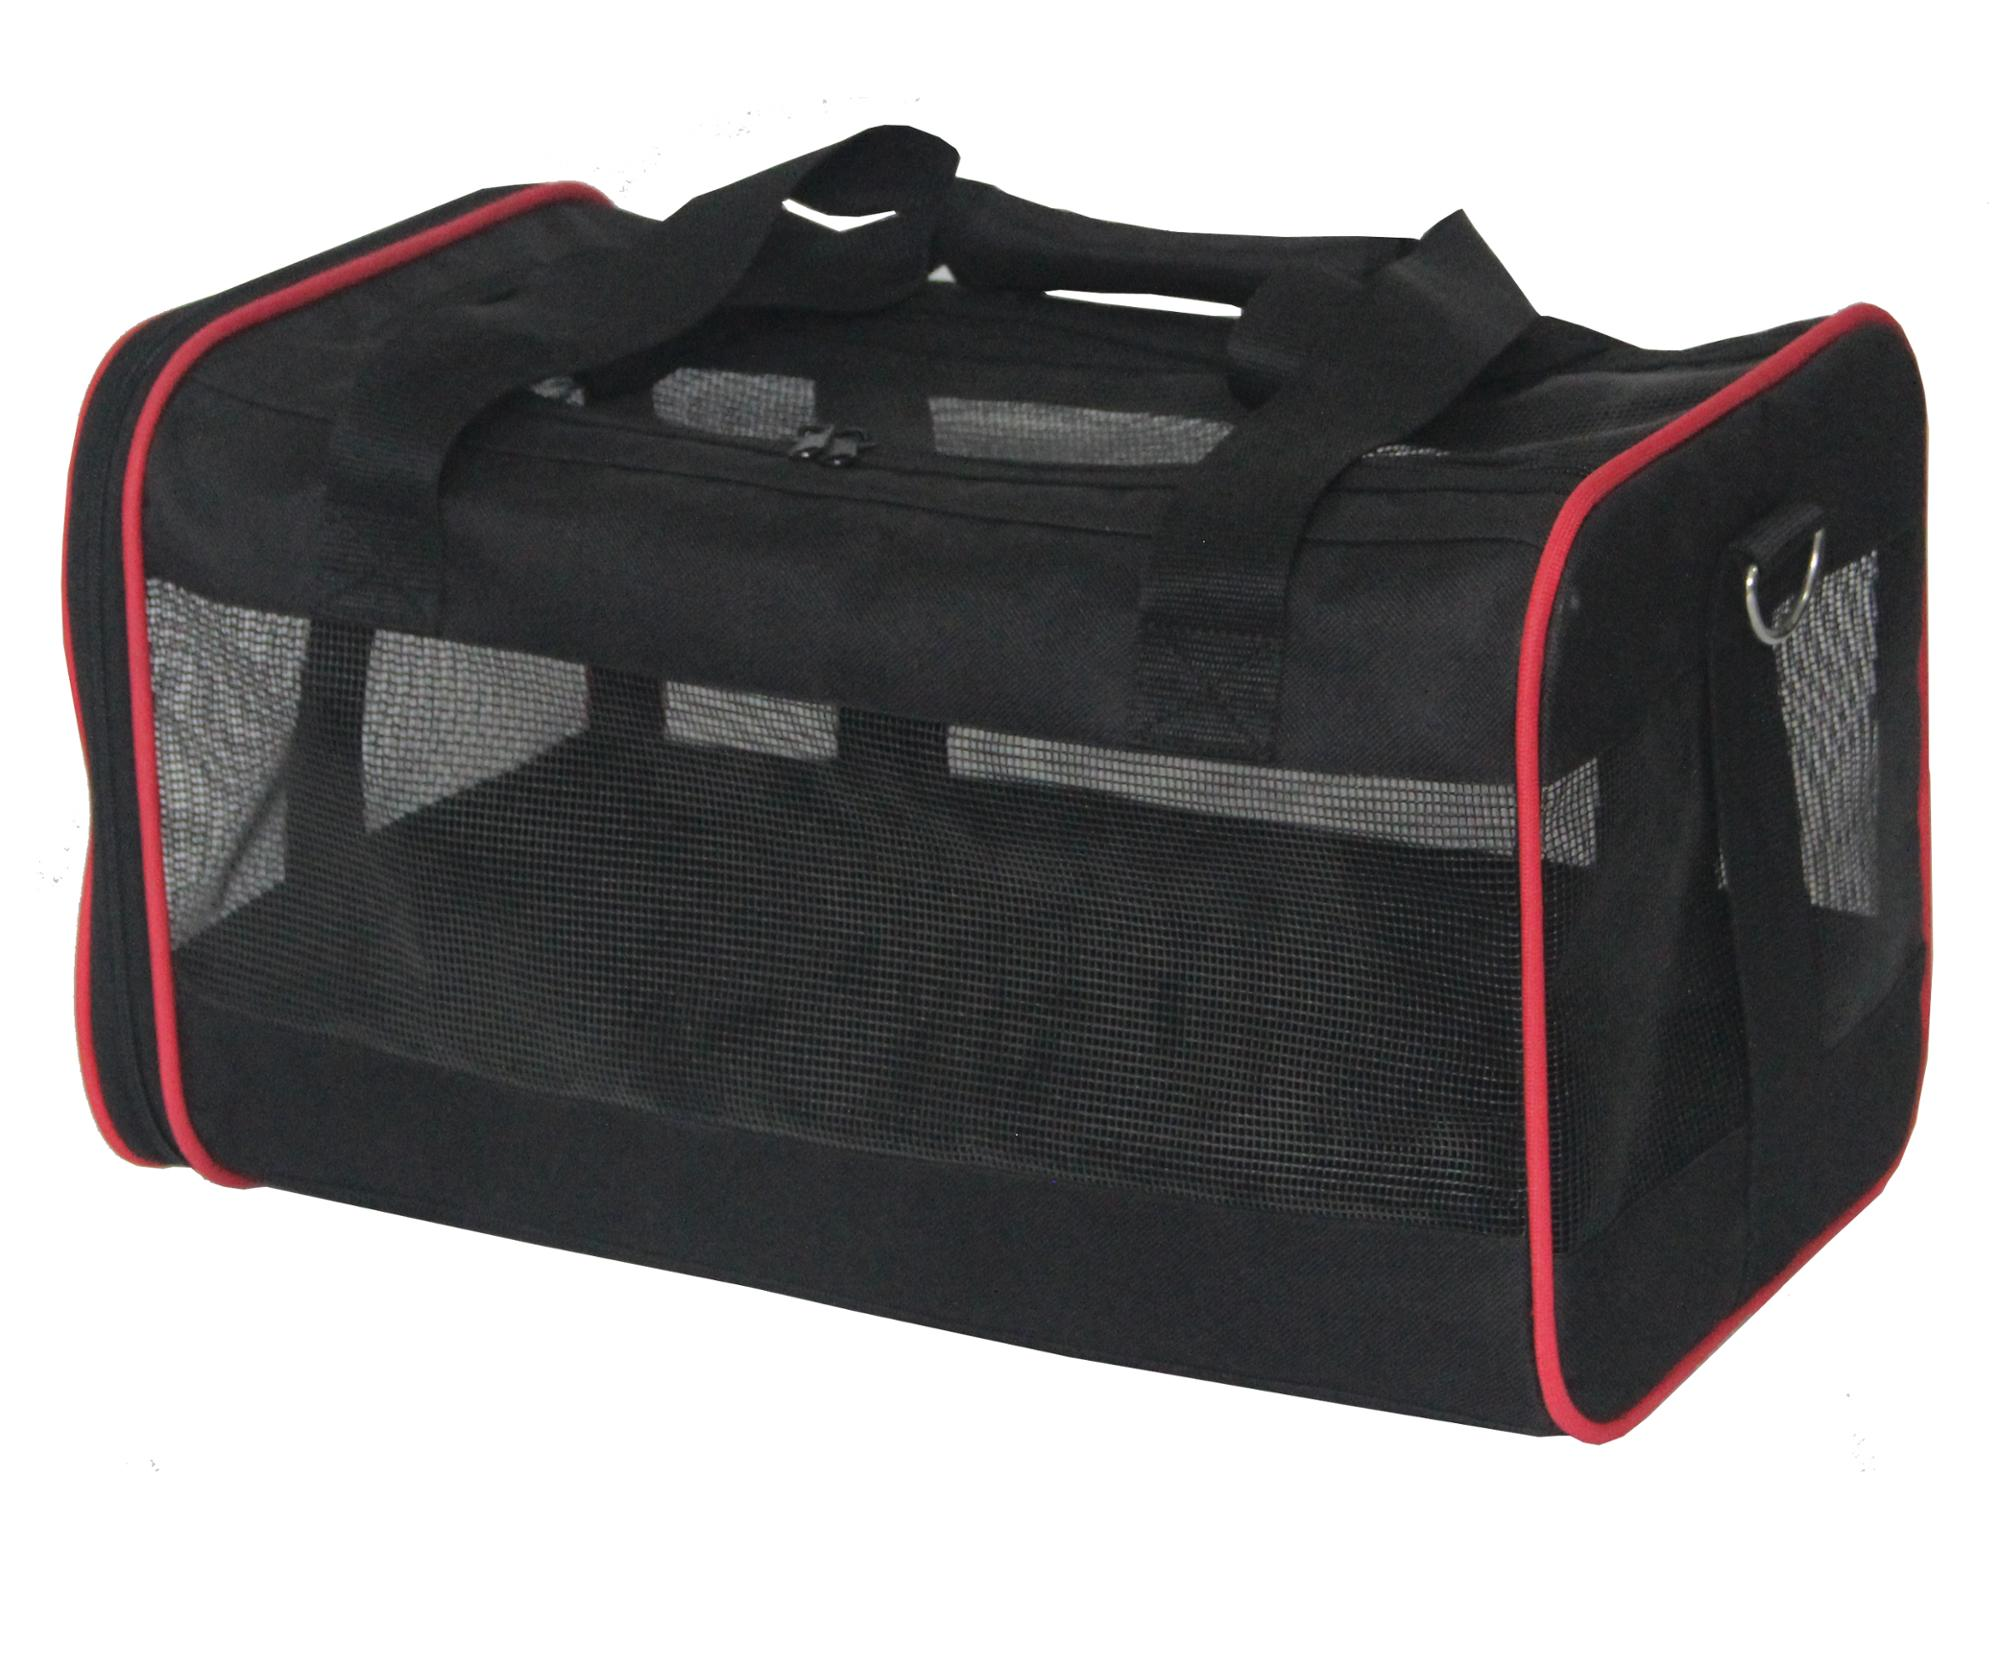 Carrier of pet travel foldable pet crate for dog and cat